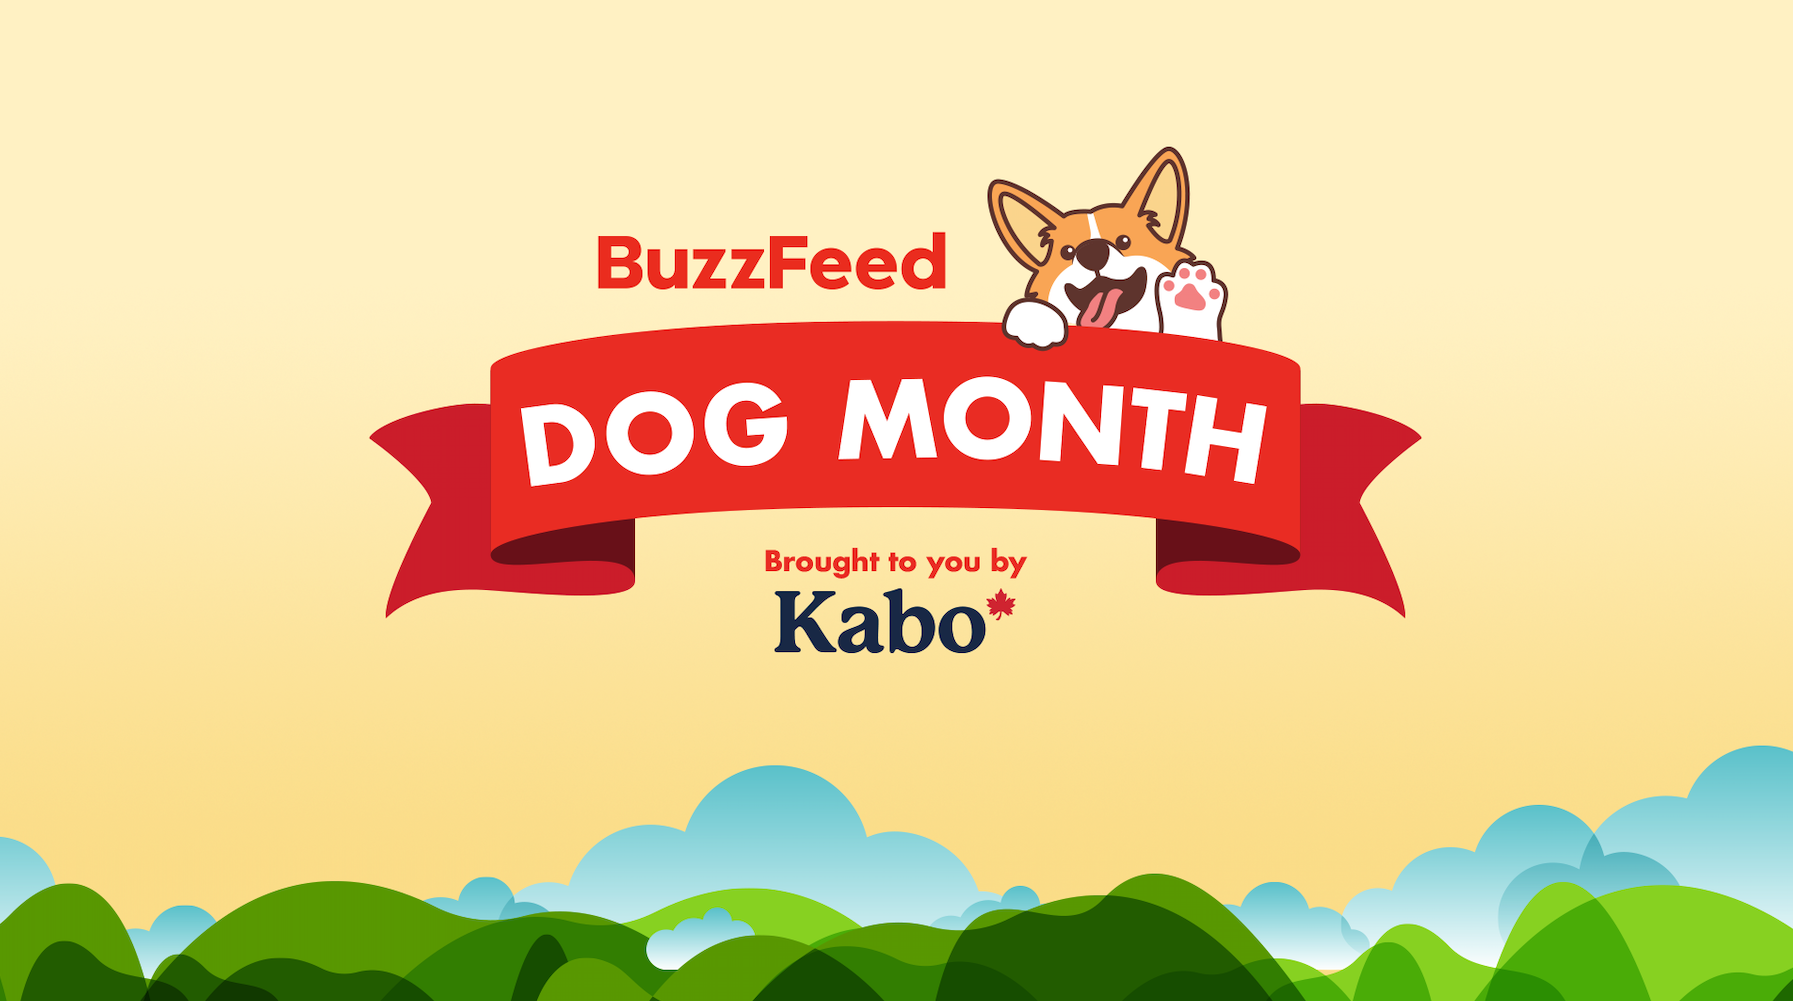 BuzzFeed Dog Month, brought to you by Kabo